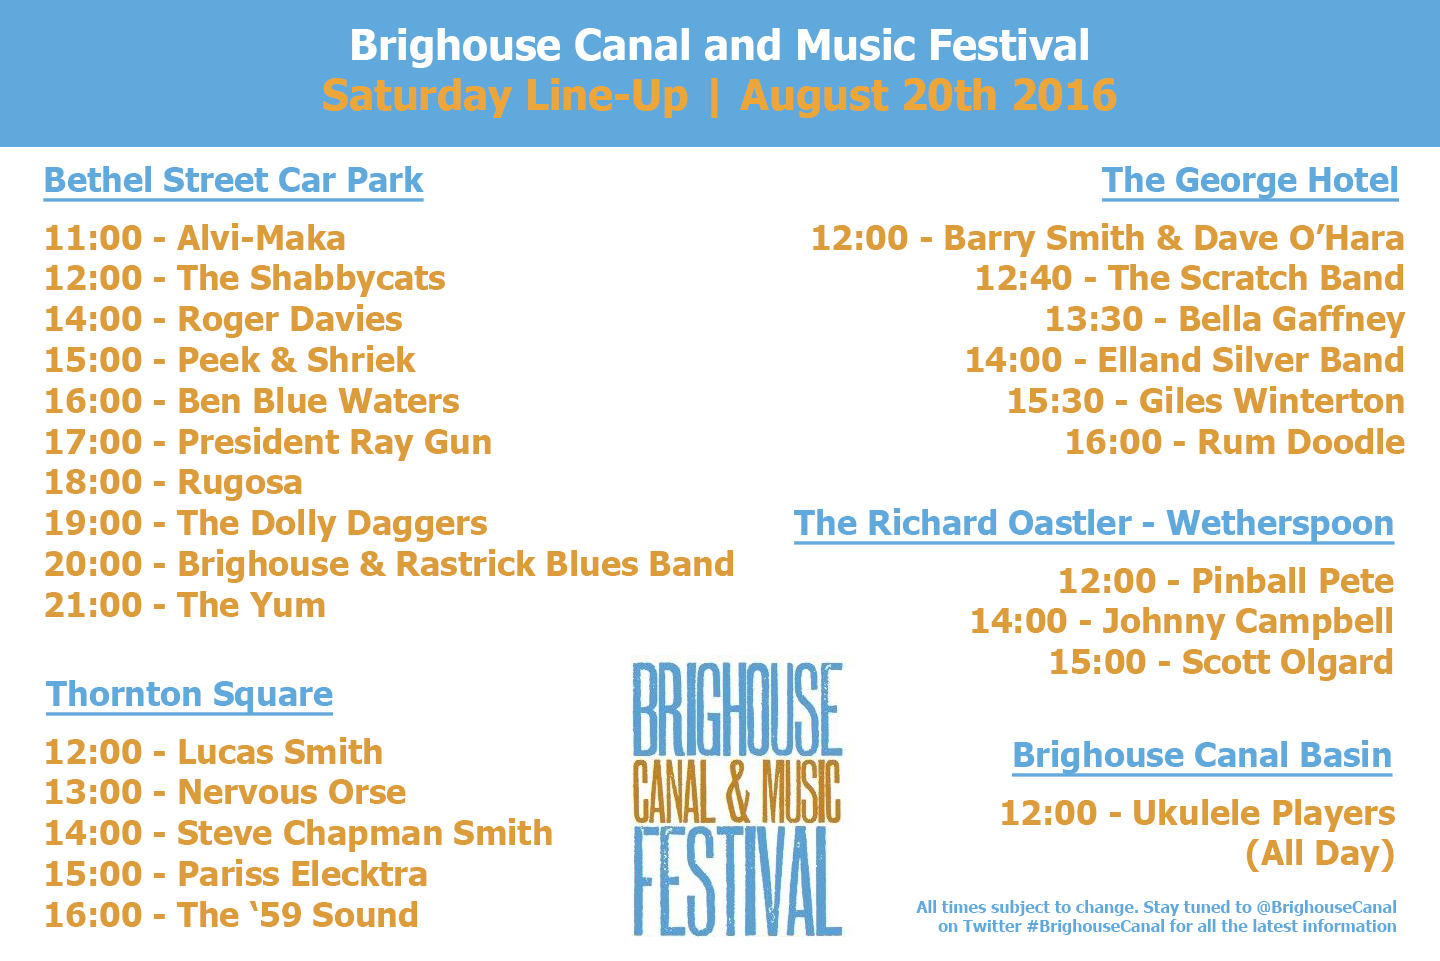 Saturday LineUp Brighouse Canal and Music Festival 2016